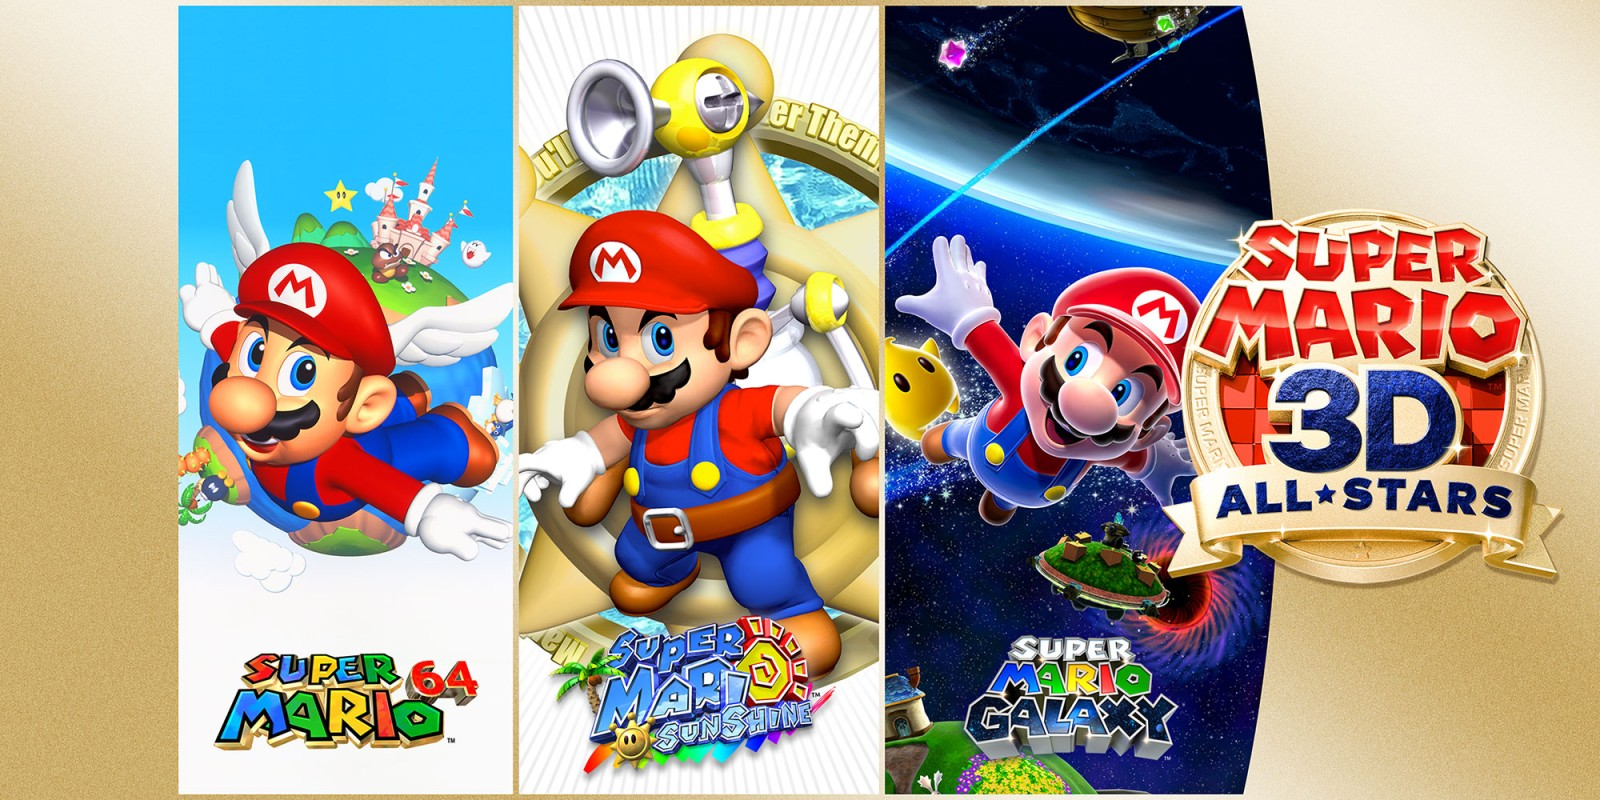 Here's the Japanese box-art for Super Mario 3D All-Stars – My Nintendo News